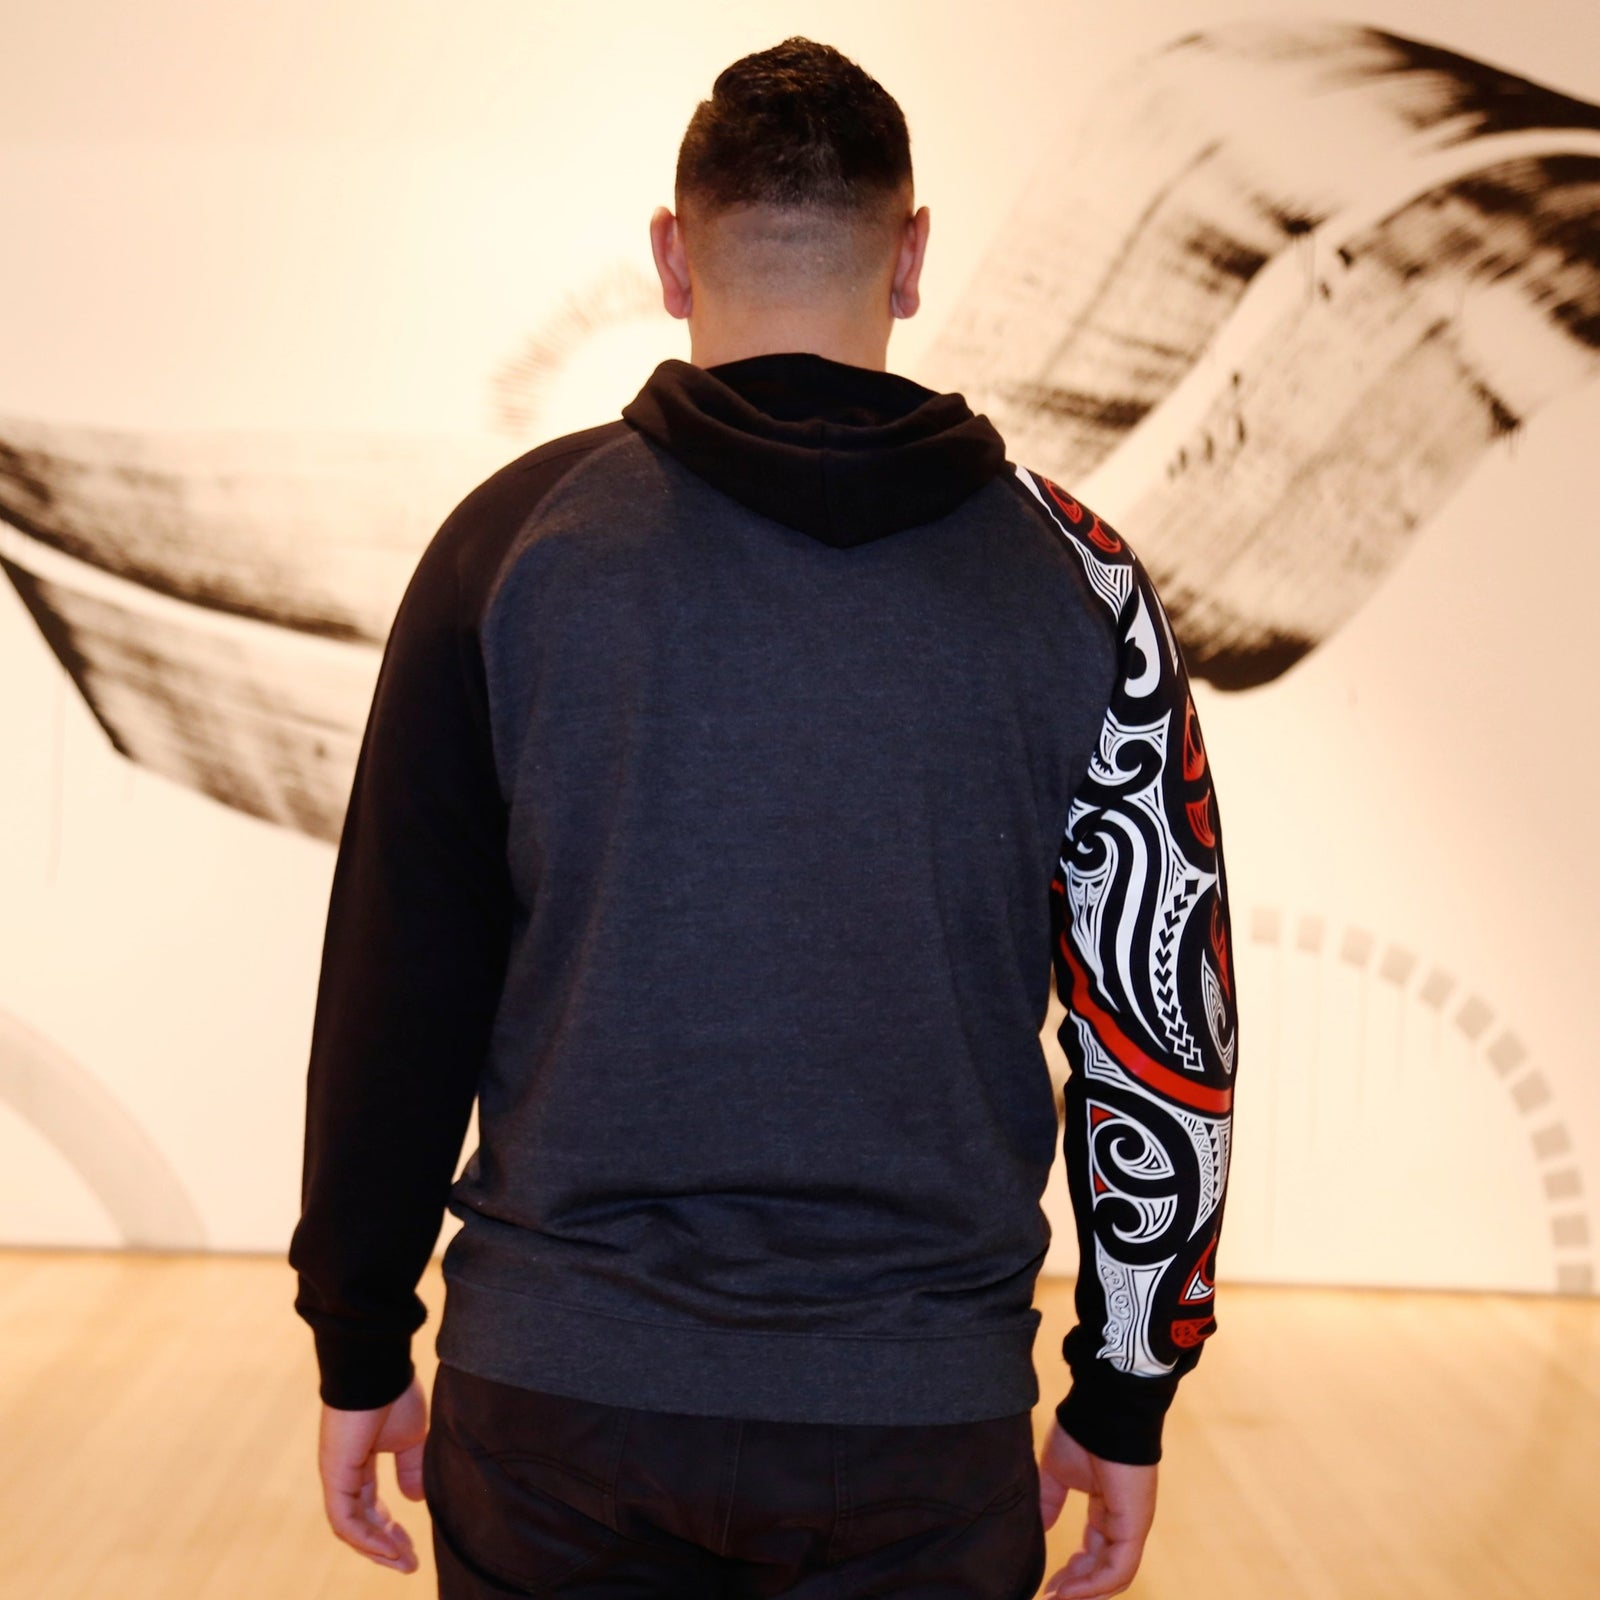 Red and white ta moko maori design on case hoodie, New Zealand clothing